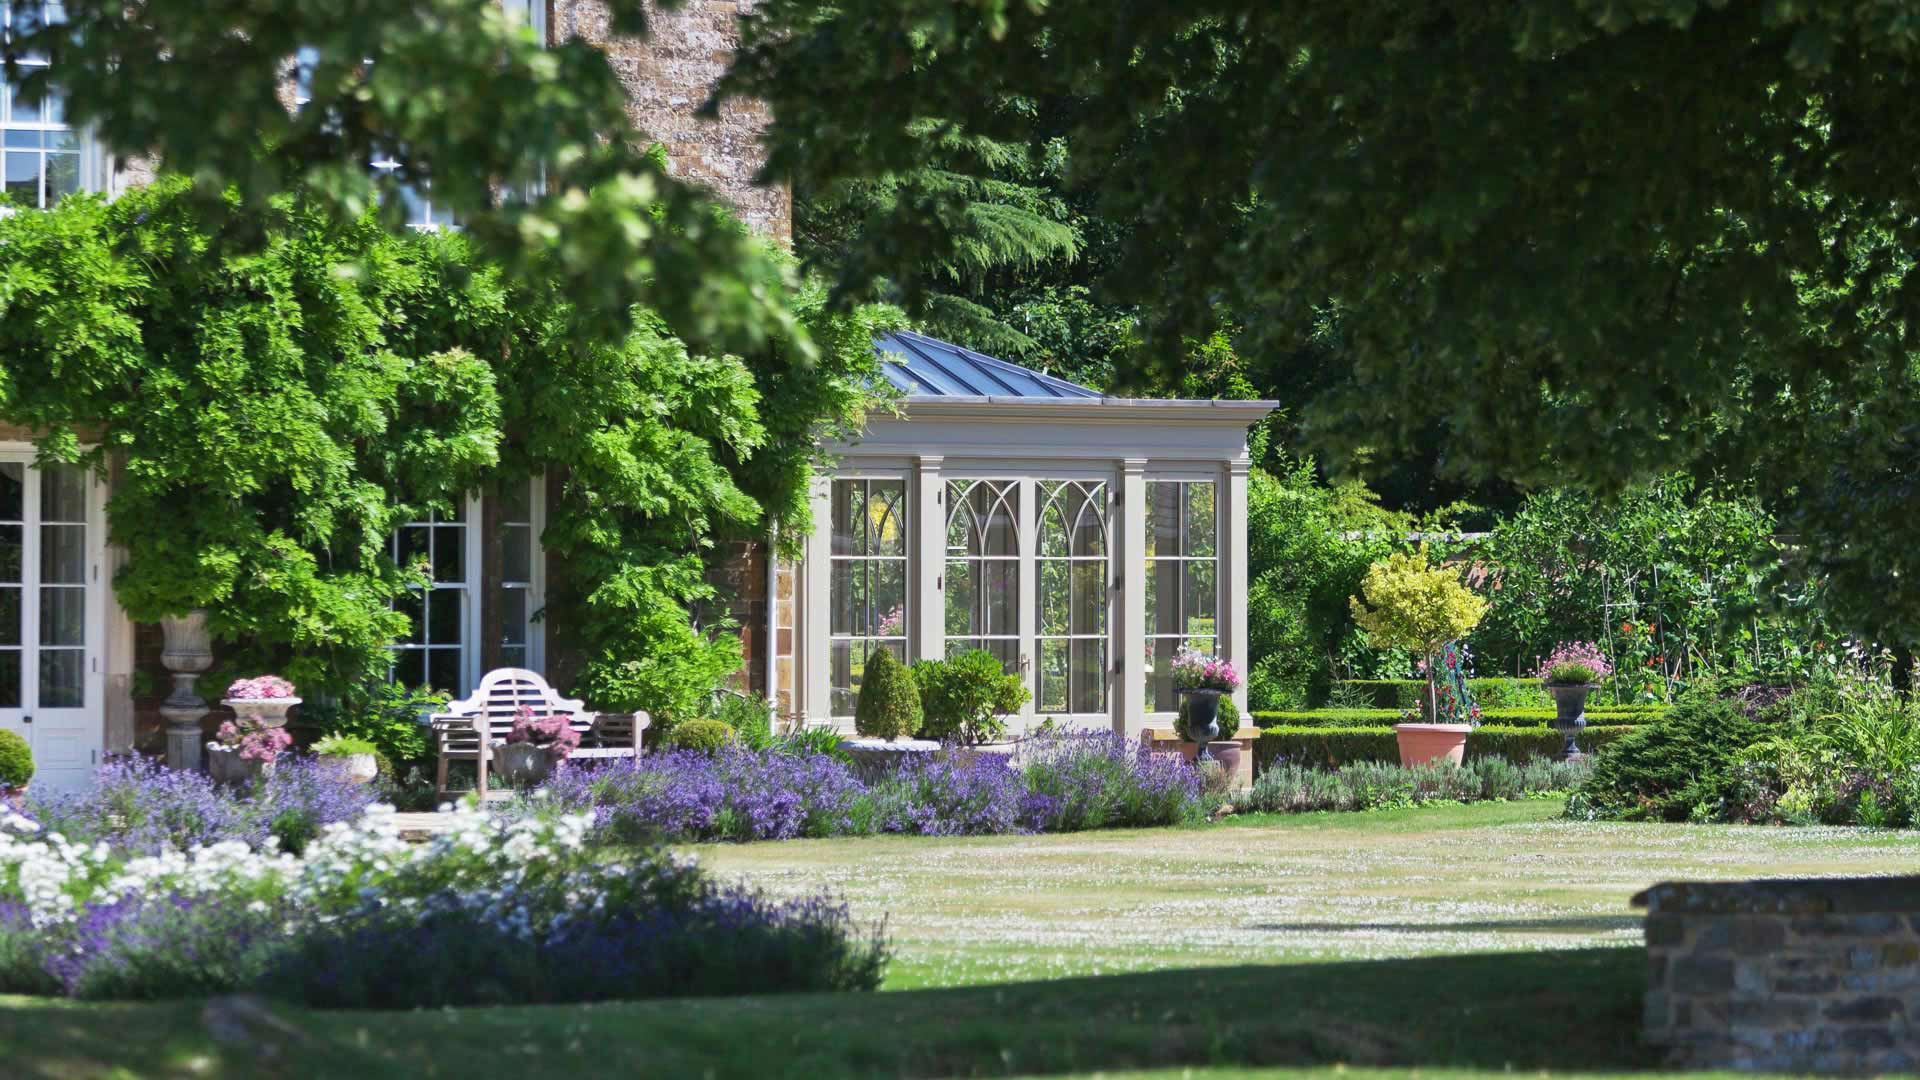 Bespoke Orangery in the perfect setting of an english garden